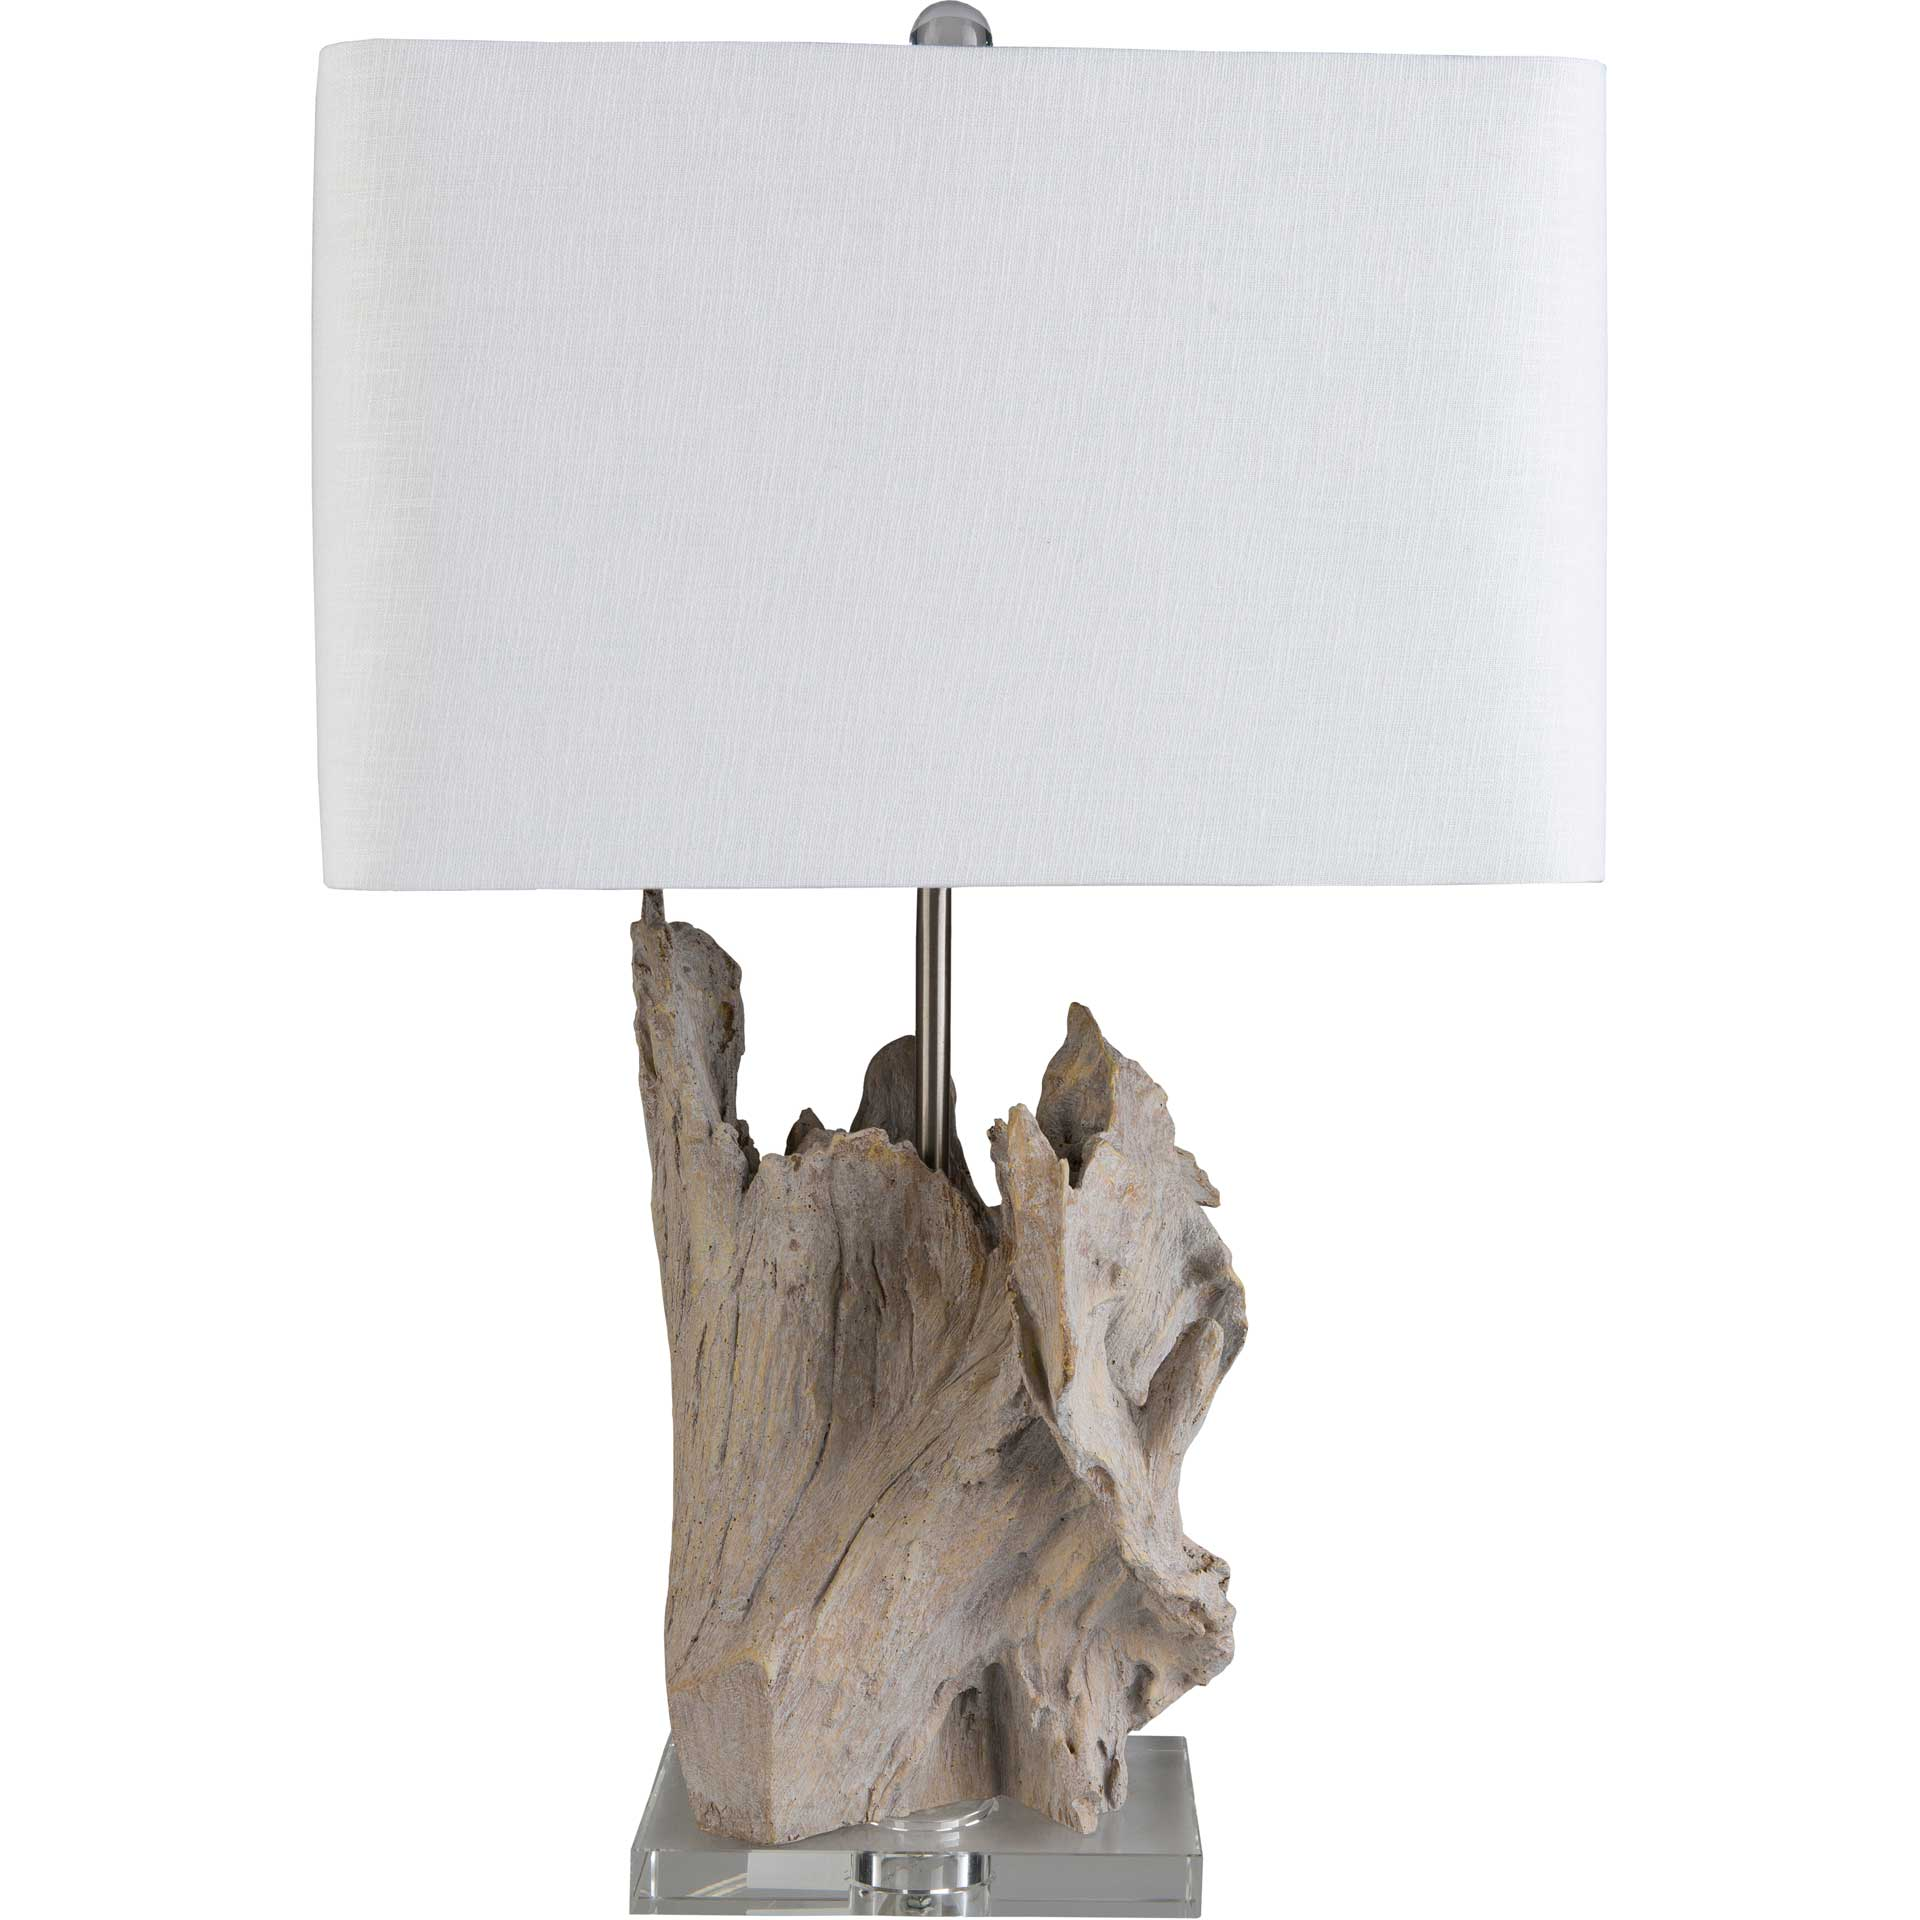 Dalilah Table Lamp White/Natural